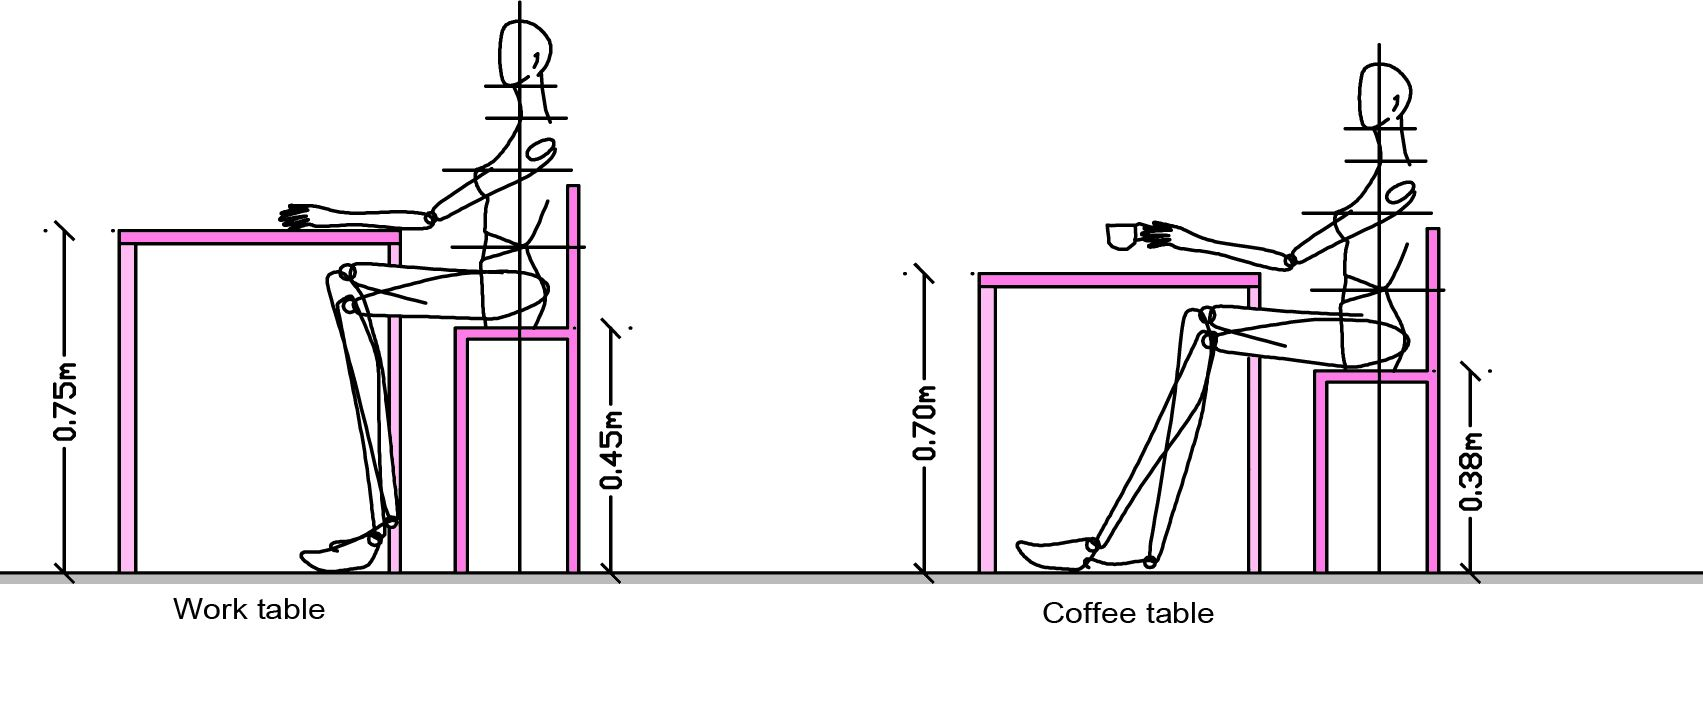 Body measurements (ergonomics) for table and chair: dining